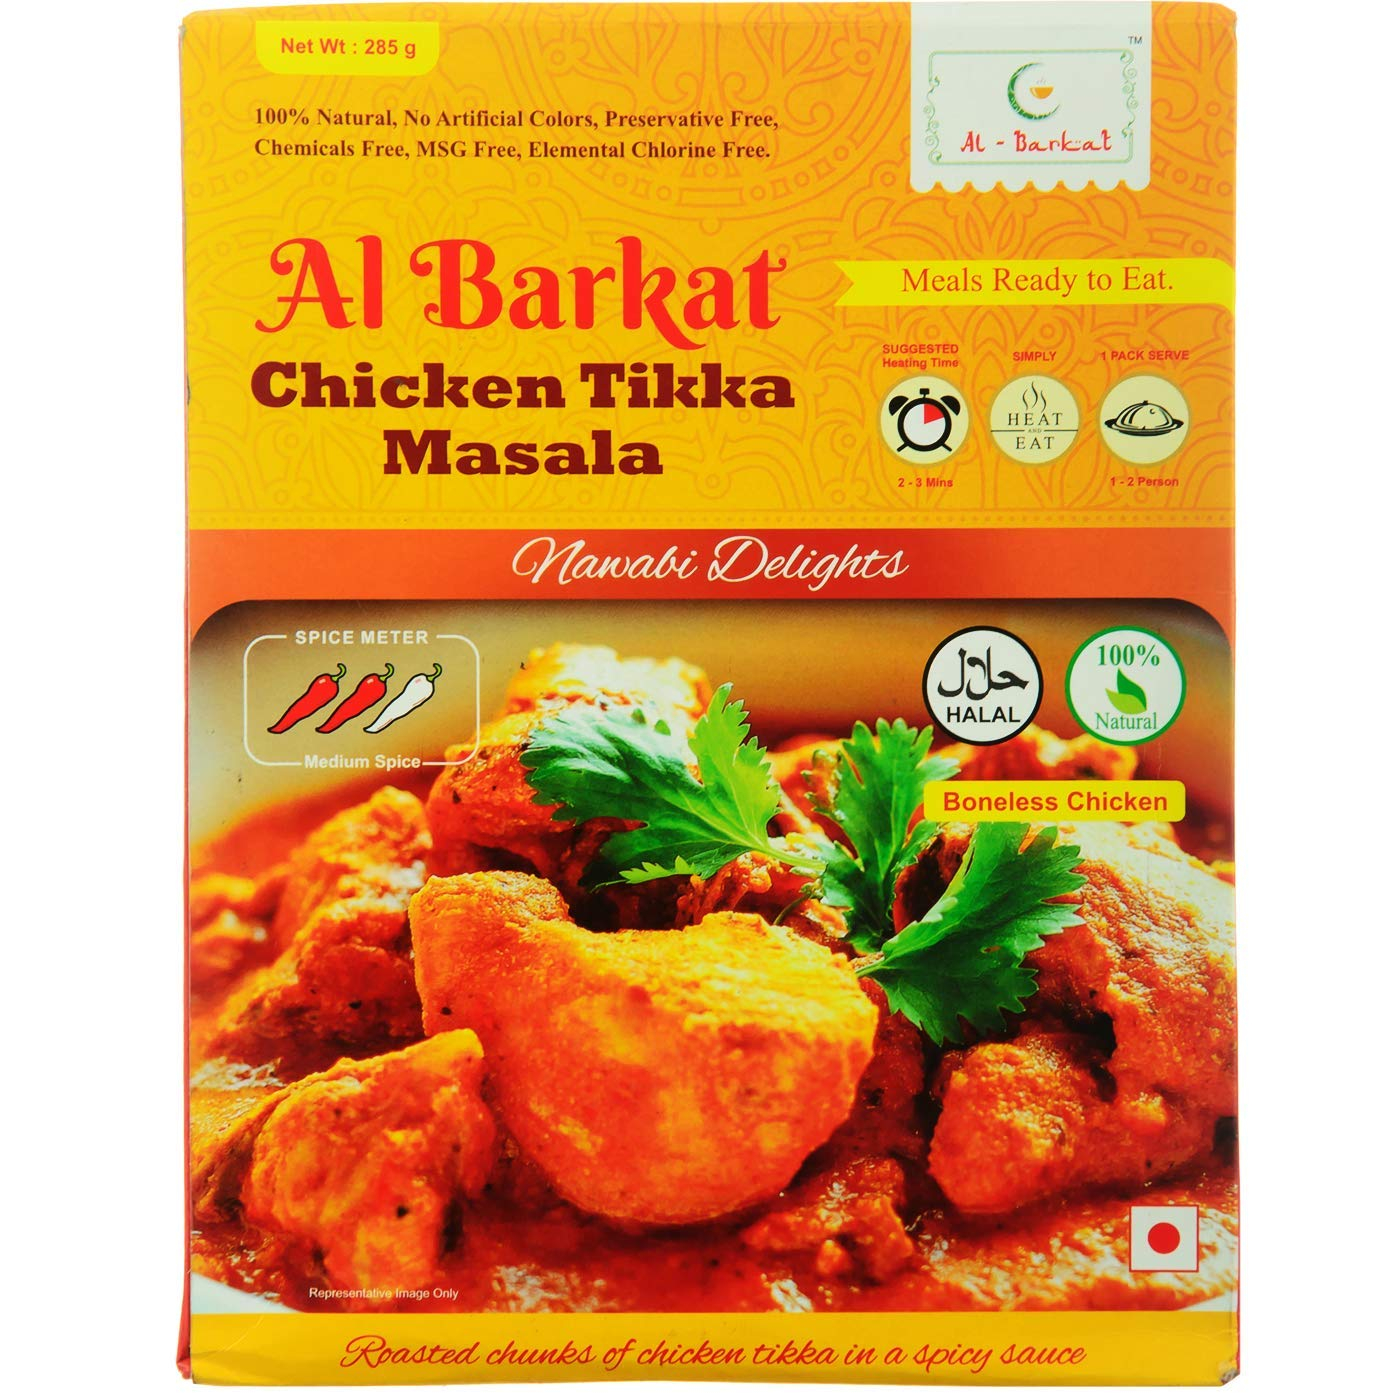 5c71eb7d7f10 AL BARKAT Ready to Eat Chicken Tikka Curry Masala - Pack of 2 (2 X 285g)   Amazon.in  Grocery   Gourmet Foods